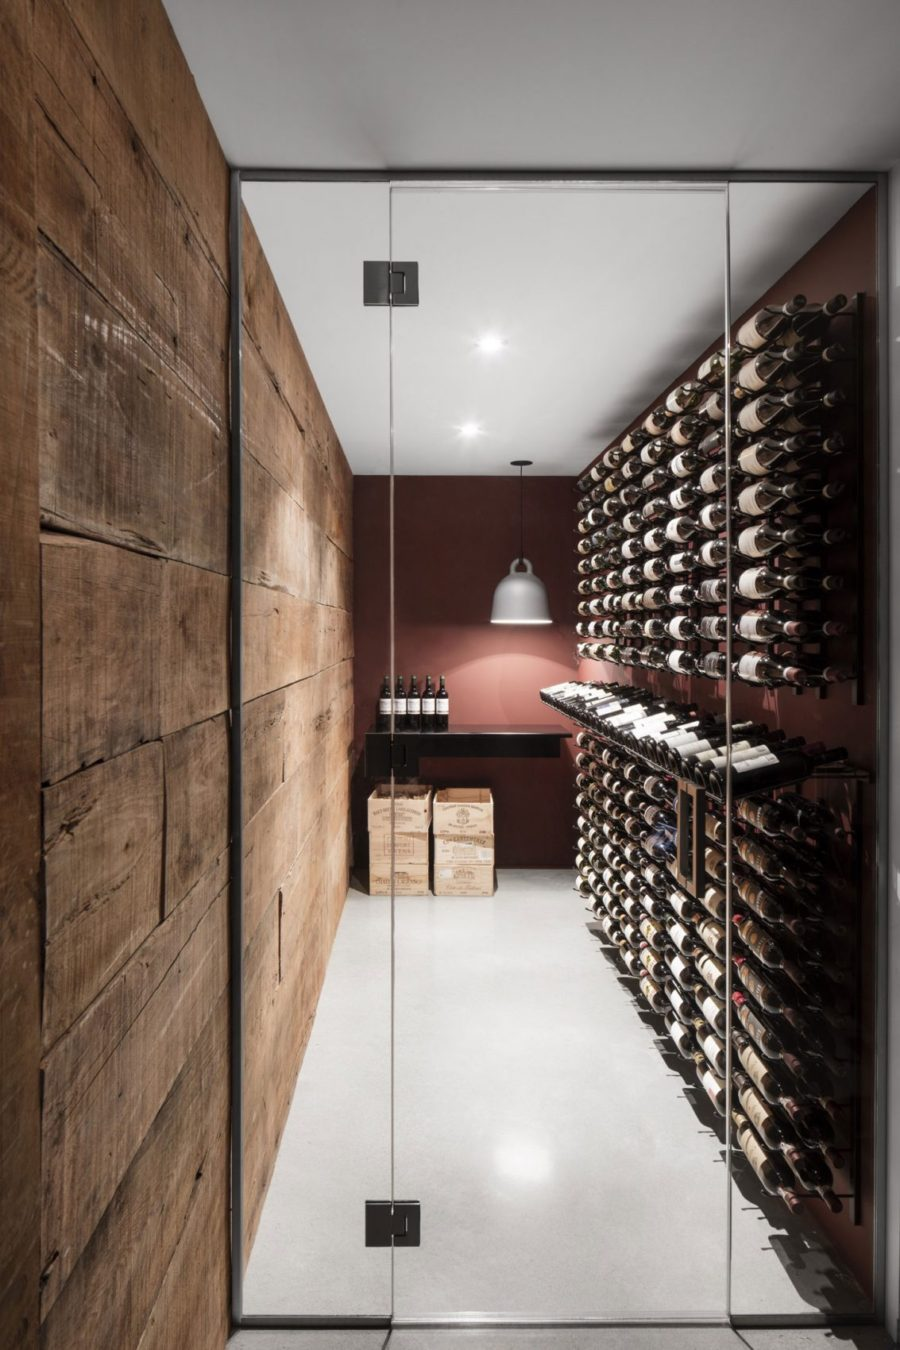 Wine cellar in a small room with a glass door